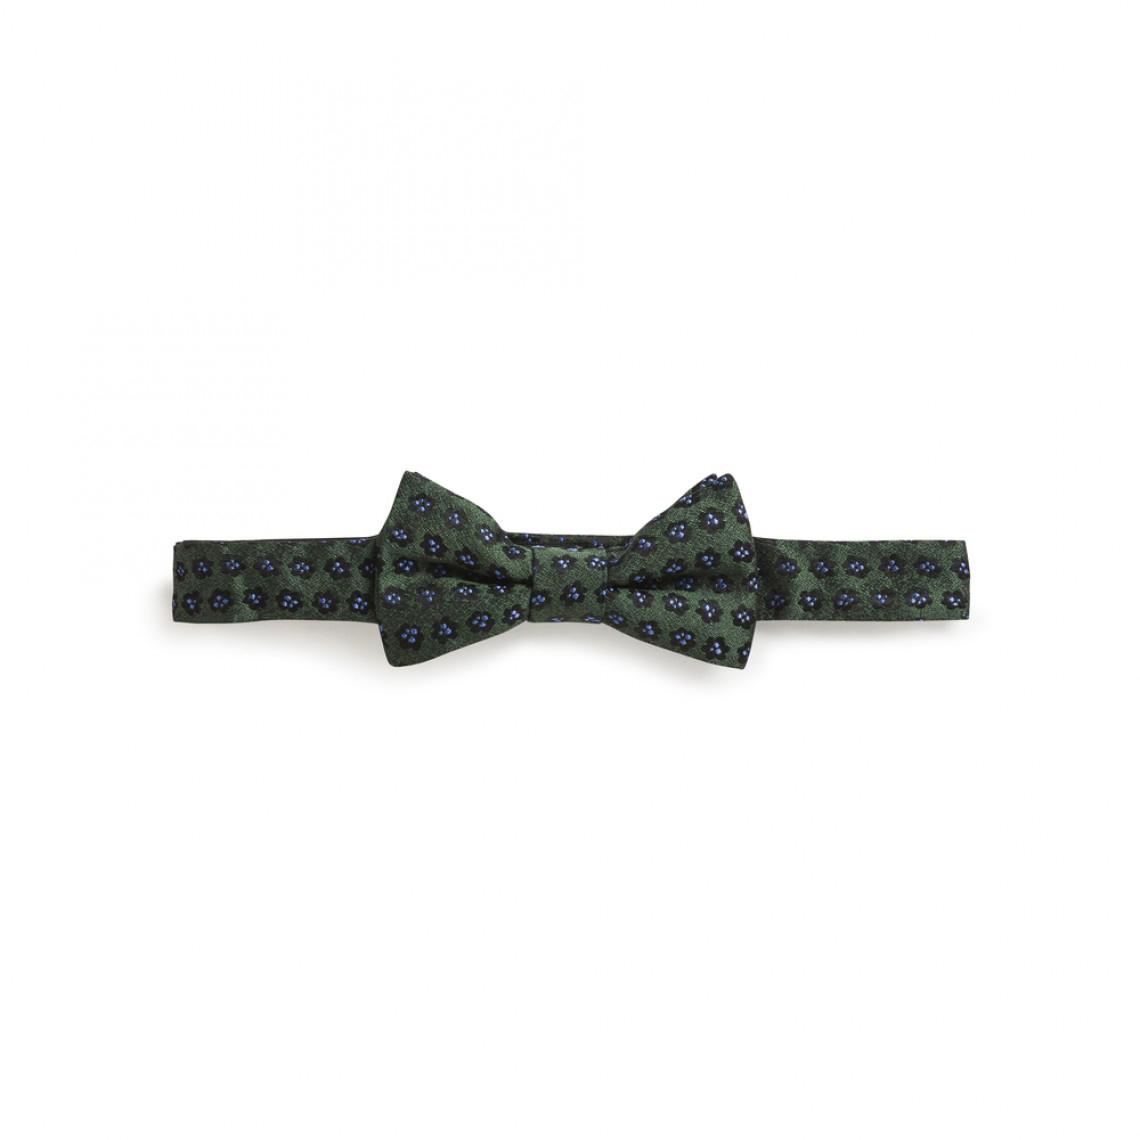 ring bearer dark green floral bow tie